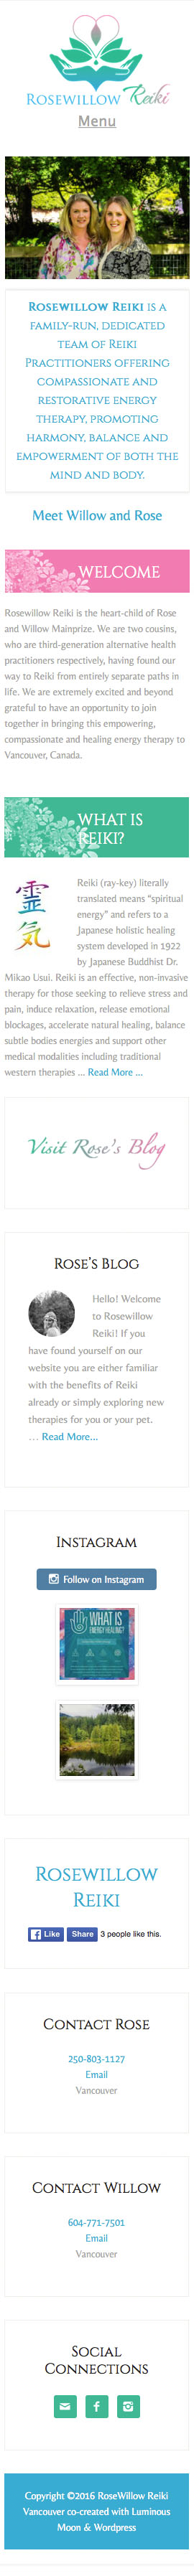 RoseWillow Reiki Mobile View